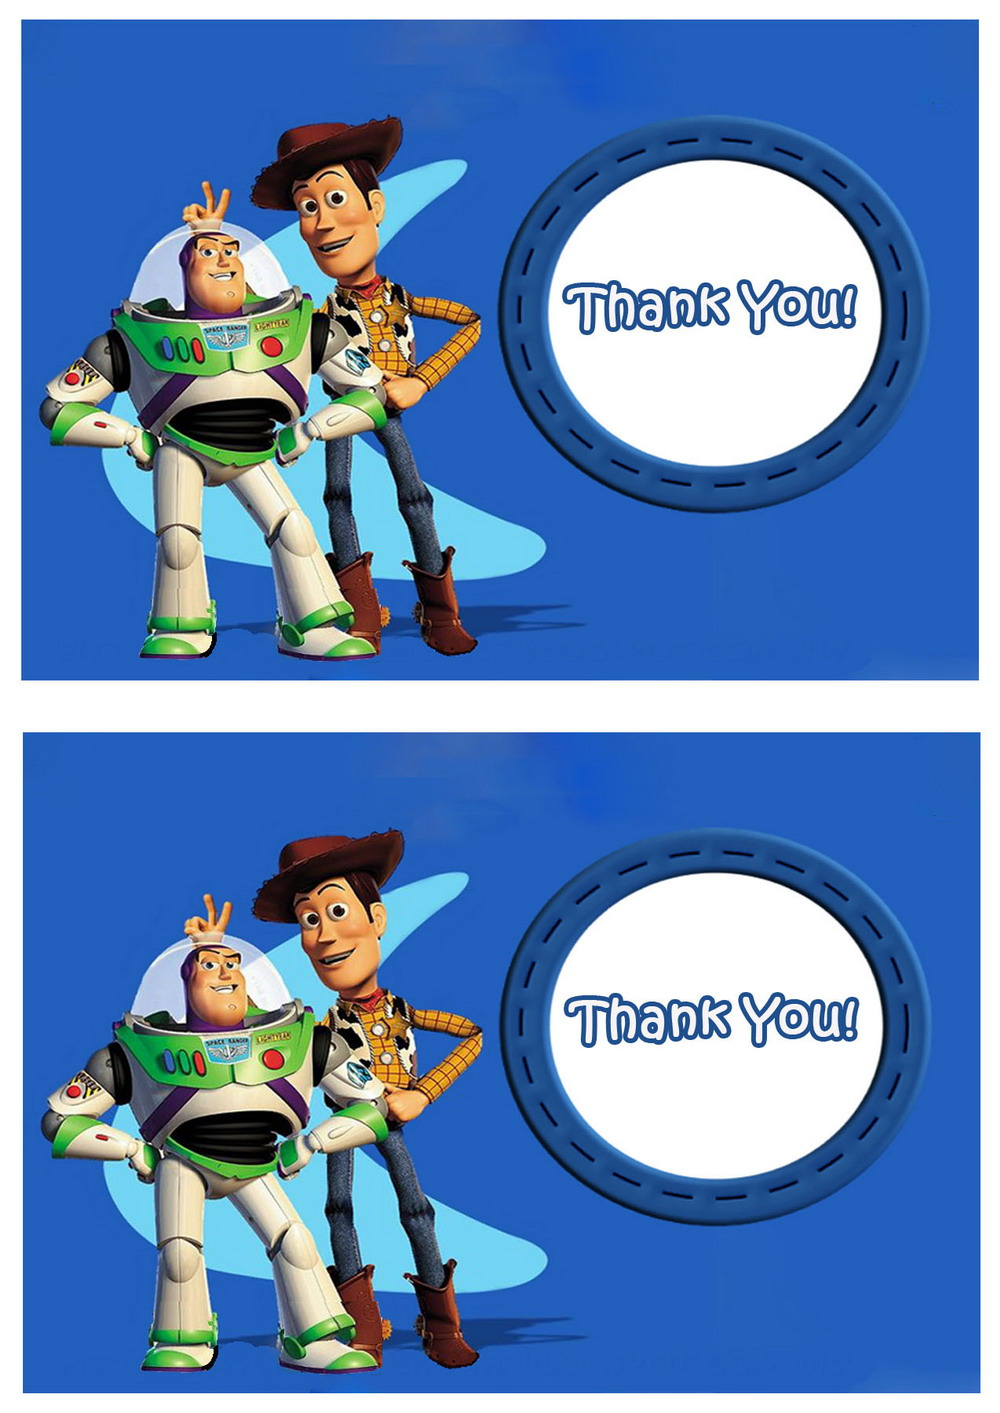 Click Image To Find More Men S Fashion: Toy Story Thank You Cards